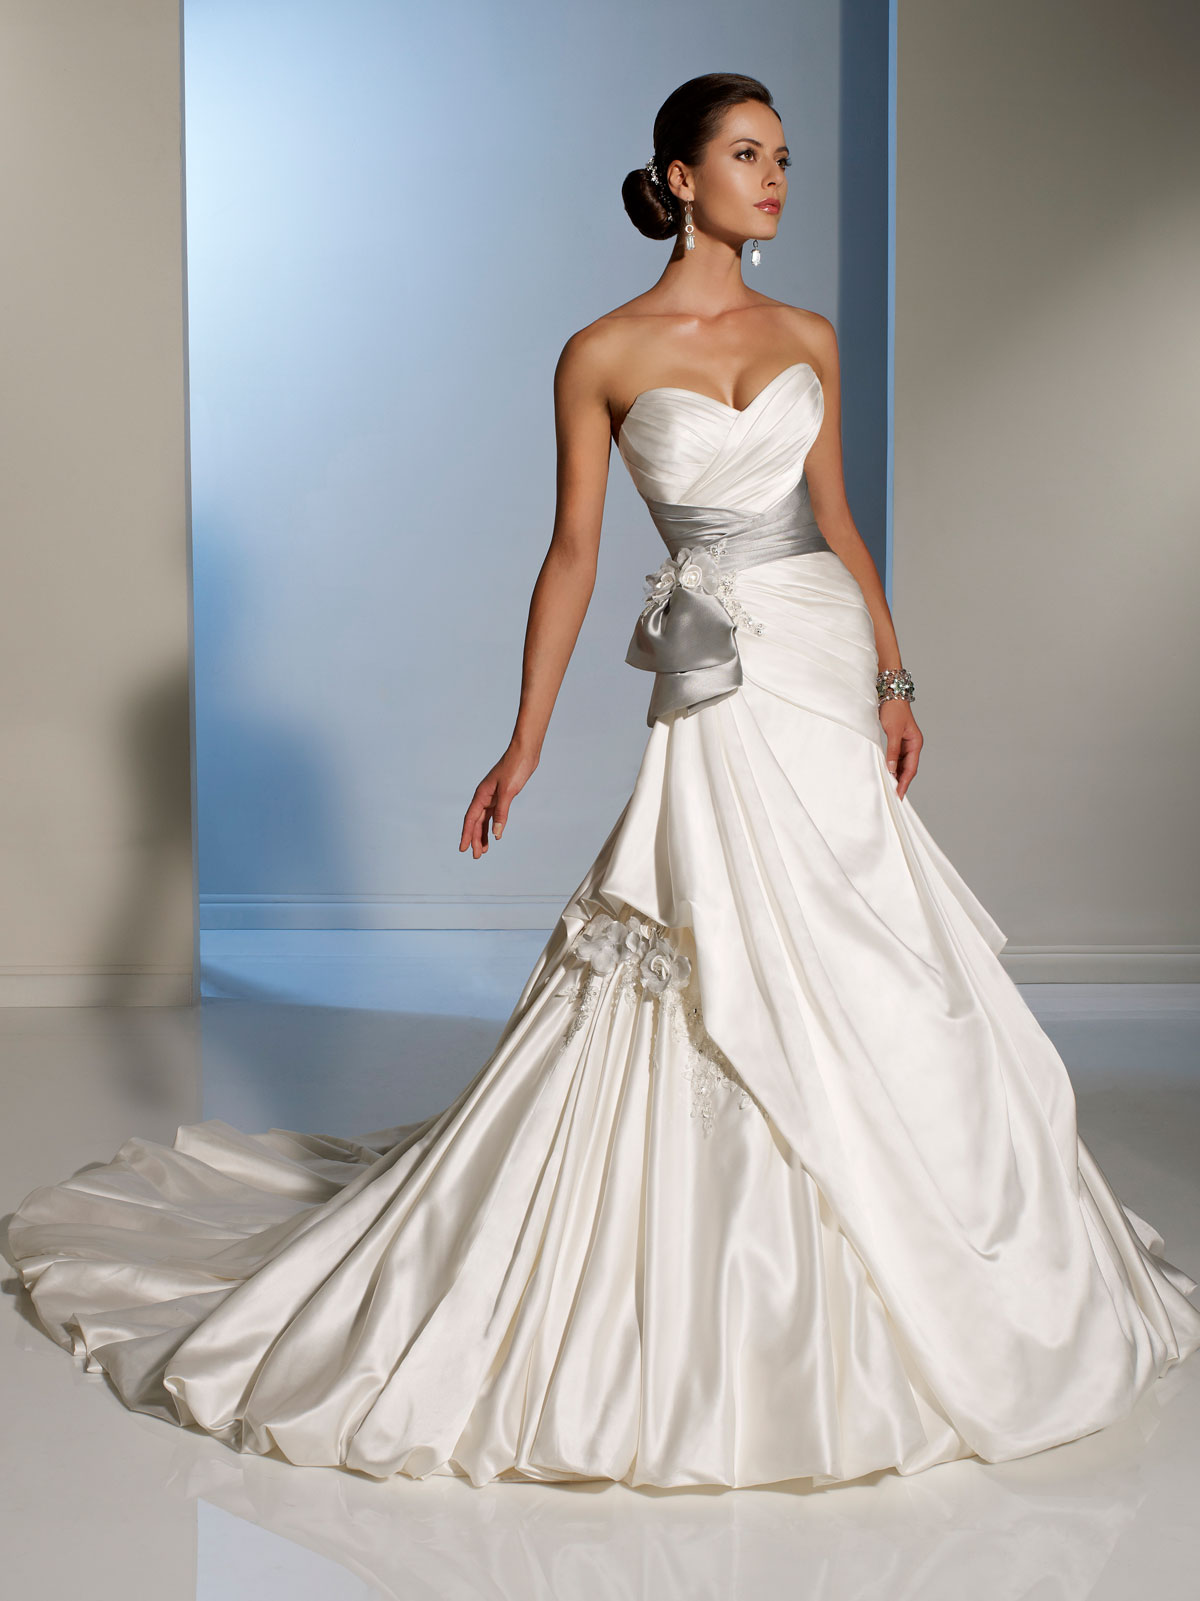 Bridal gowns with color white wedding dress Side Draped Wedding Dress with silver sash